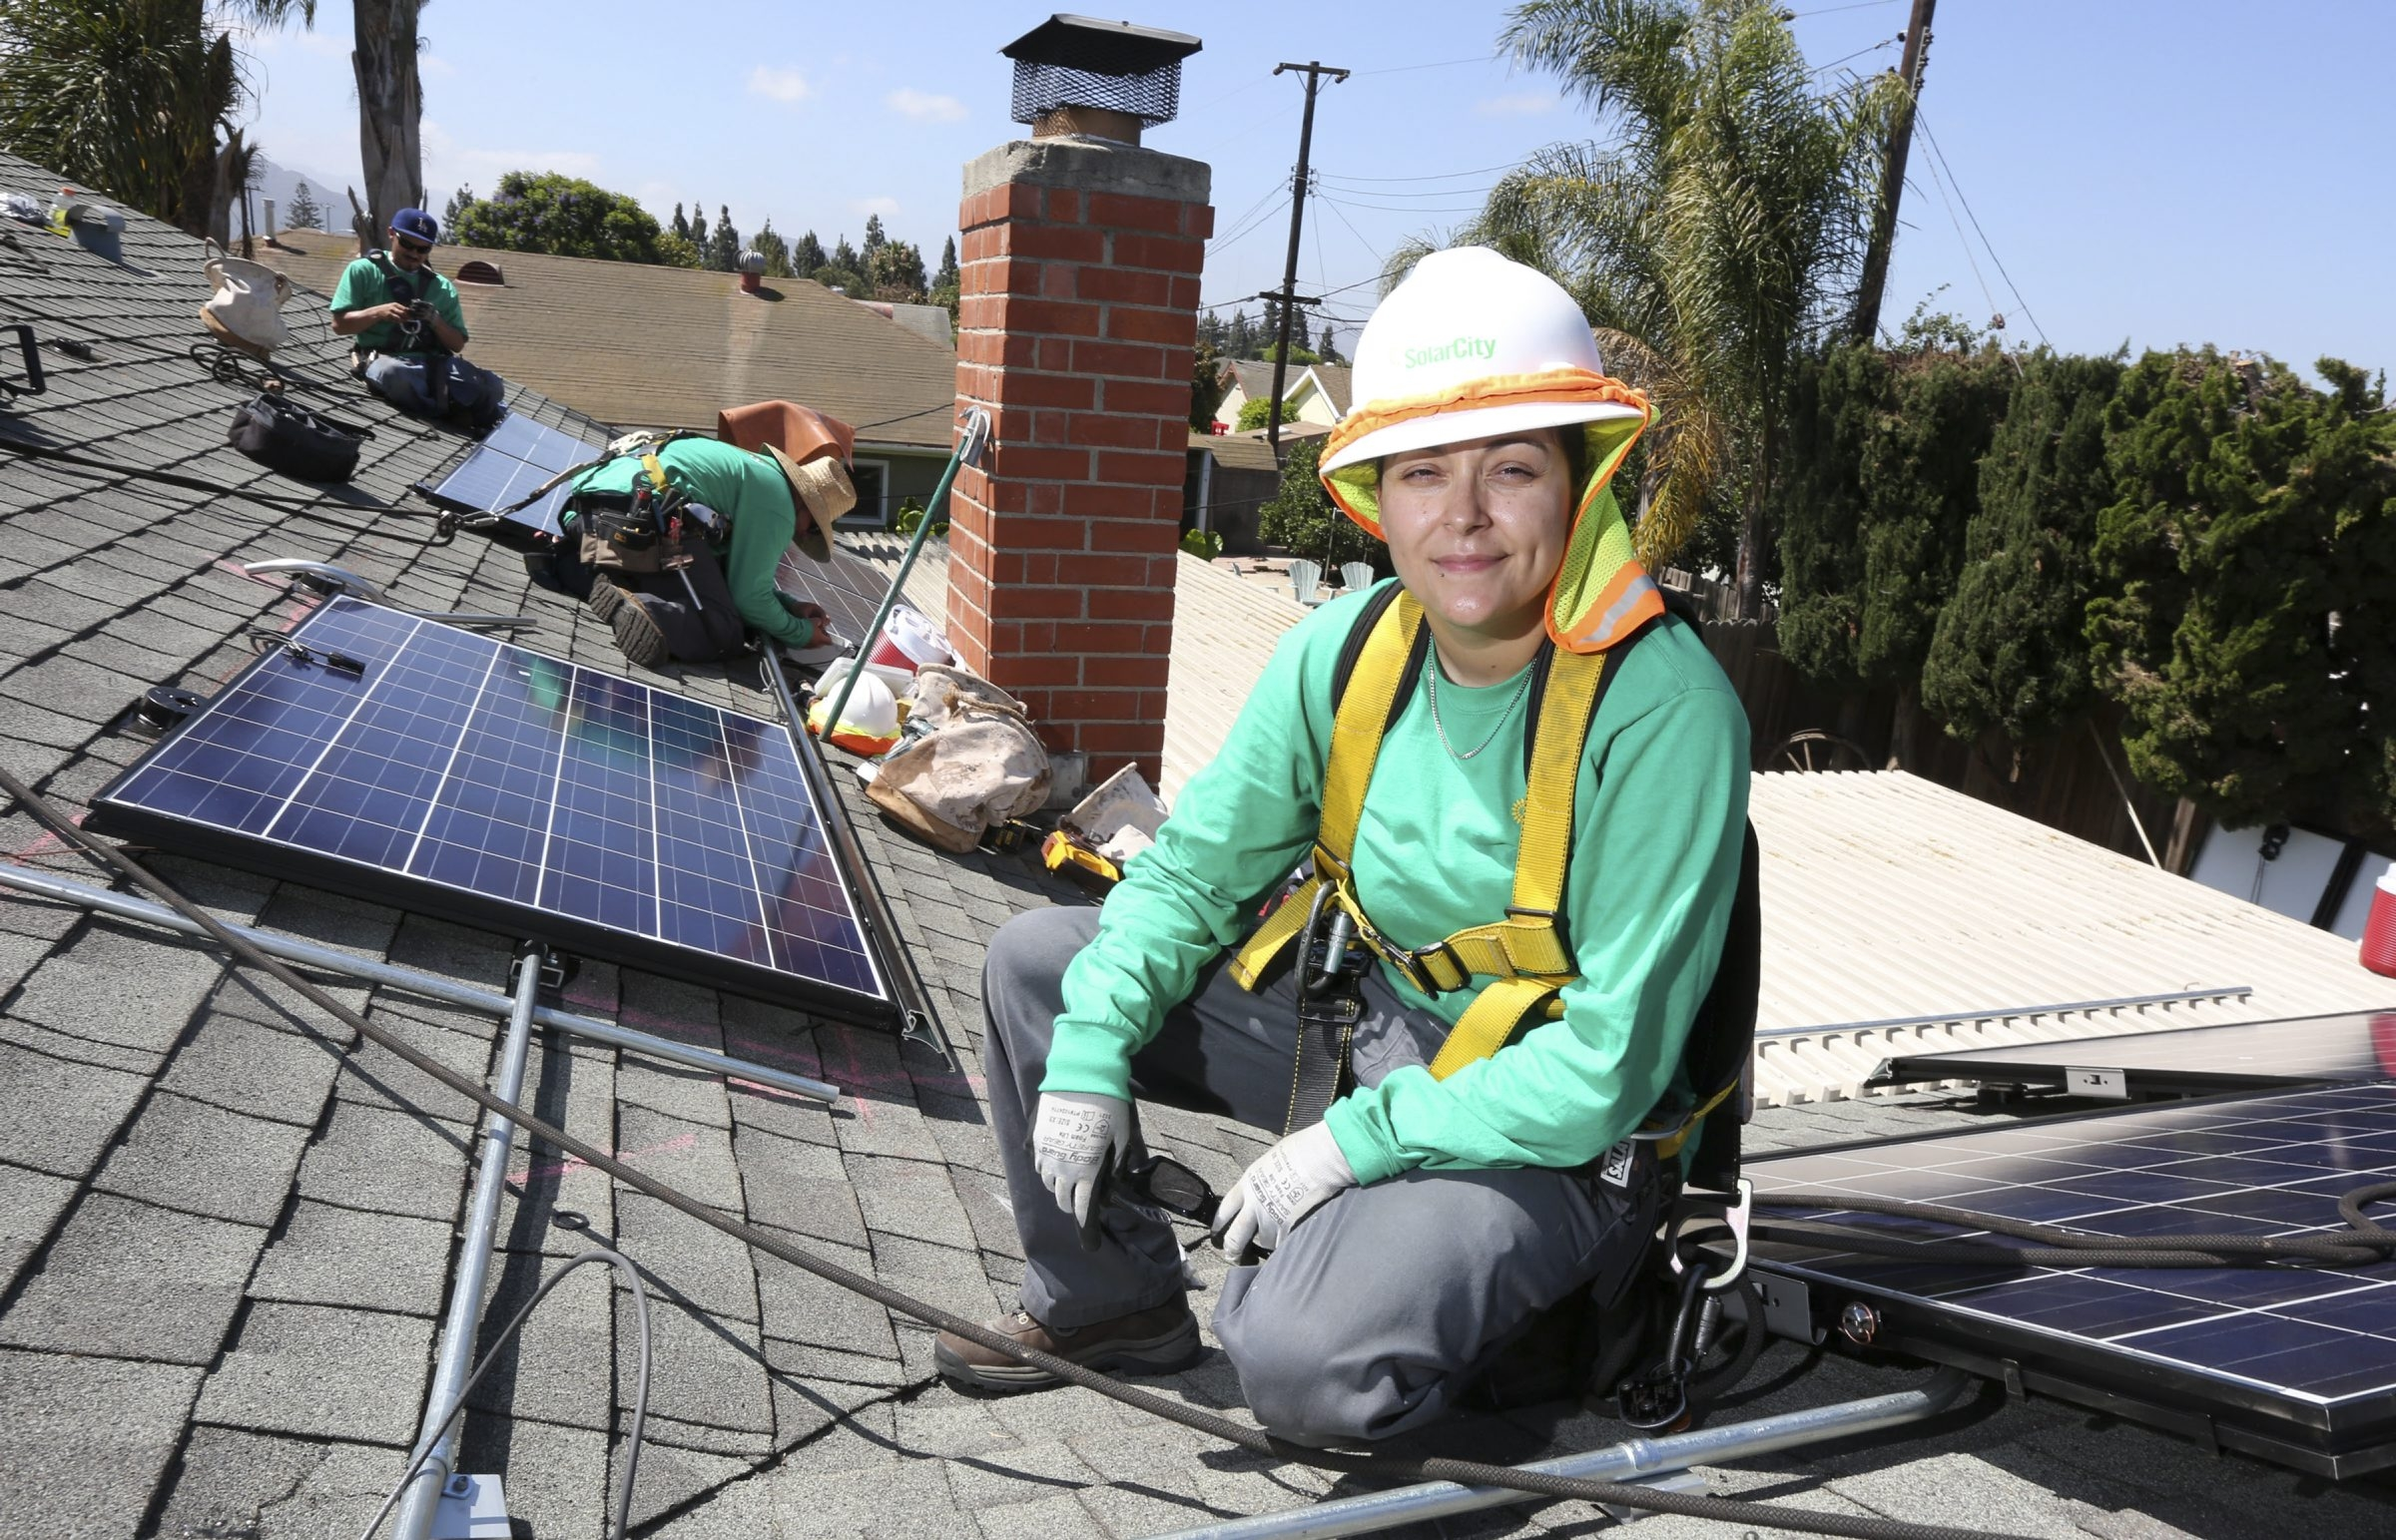 Rocio Farias, a solar panel installer at SolarCity, works on a house in Camarillo, Calif. She supervises six other installers.says itþÄôs satisfying to turn on a solar panel system and show people their electric meter going backward, sending power to the grid. (J. Emilio Flores/The) -- PHOTO MOVED IN ADVANCE AND NOT FOR USE - ONLINE OR IN PRINT - BEFORE AUG. 03, 2014.